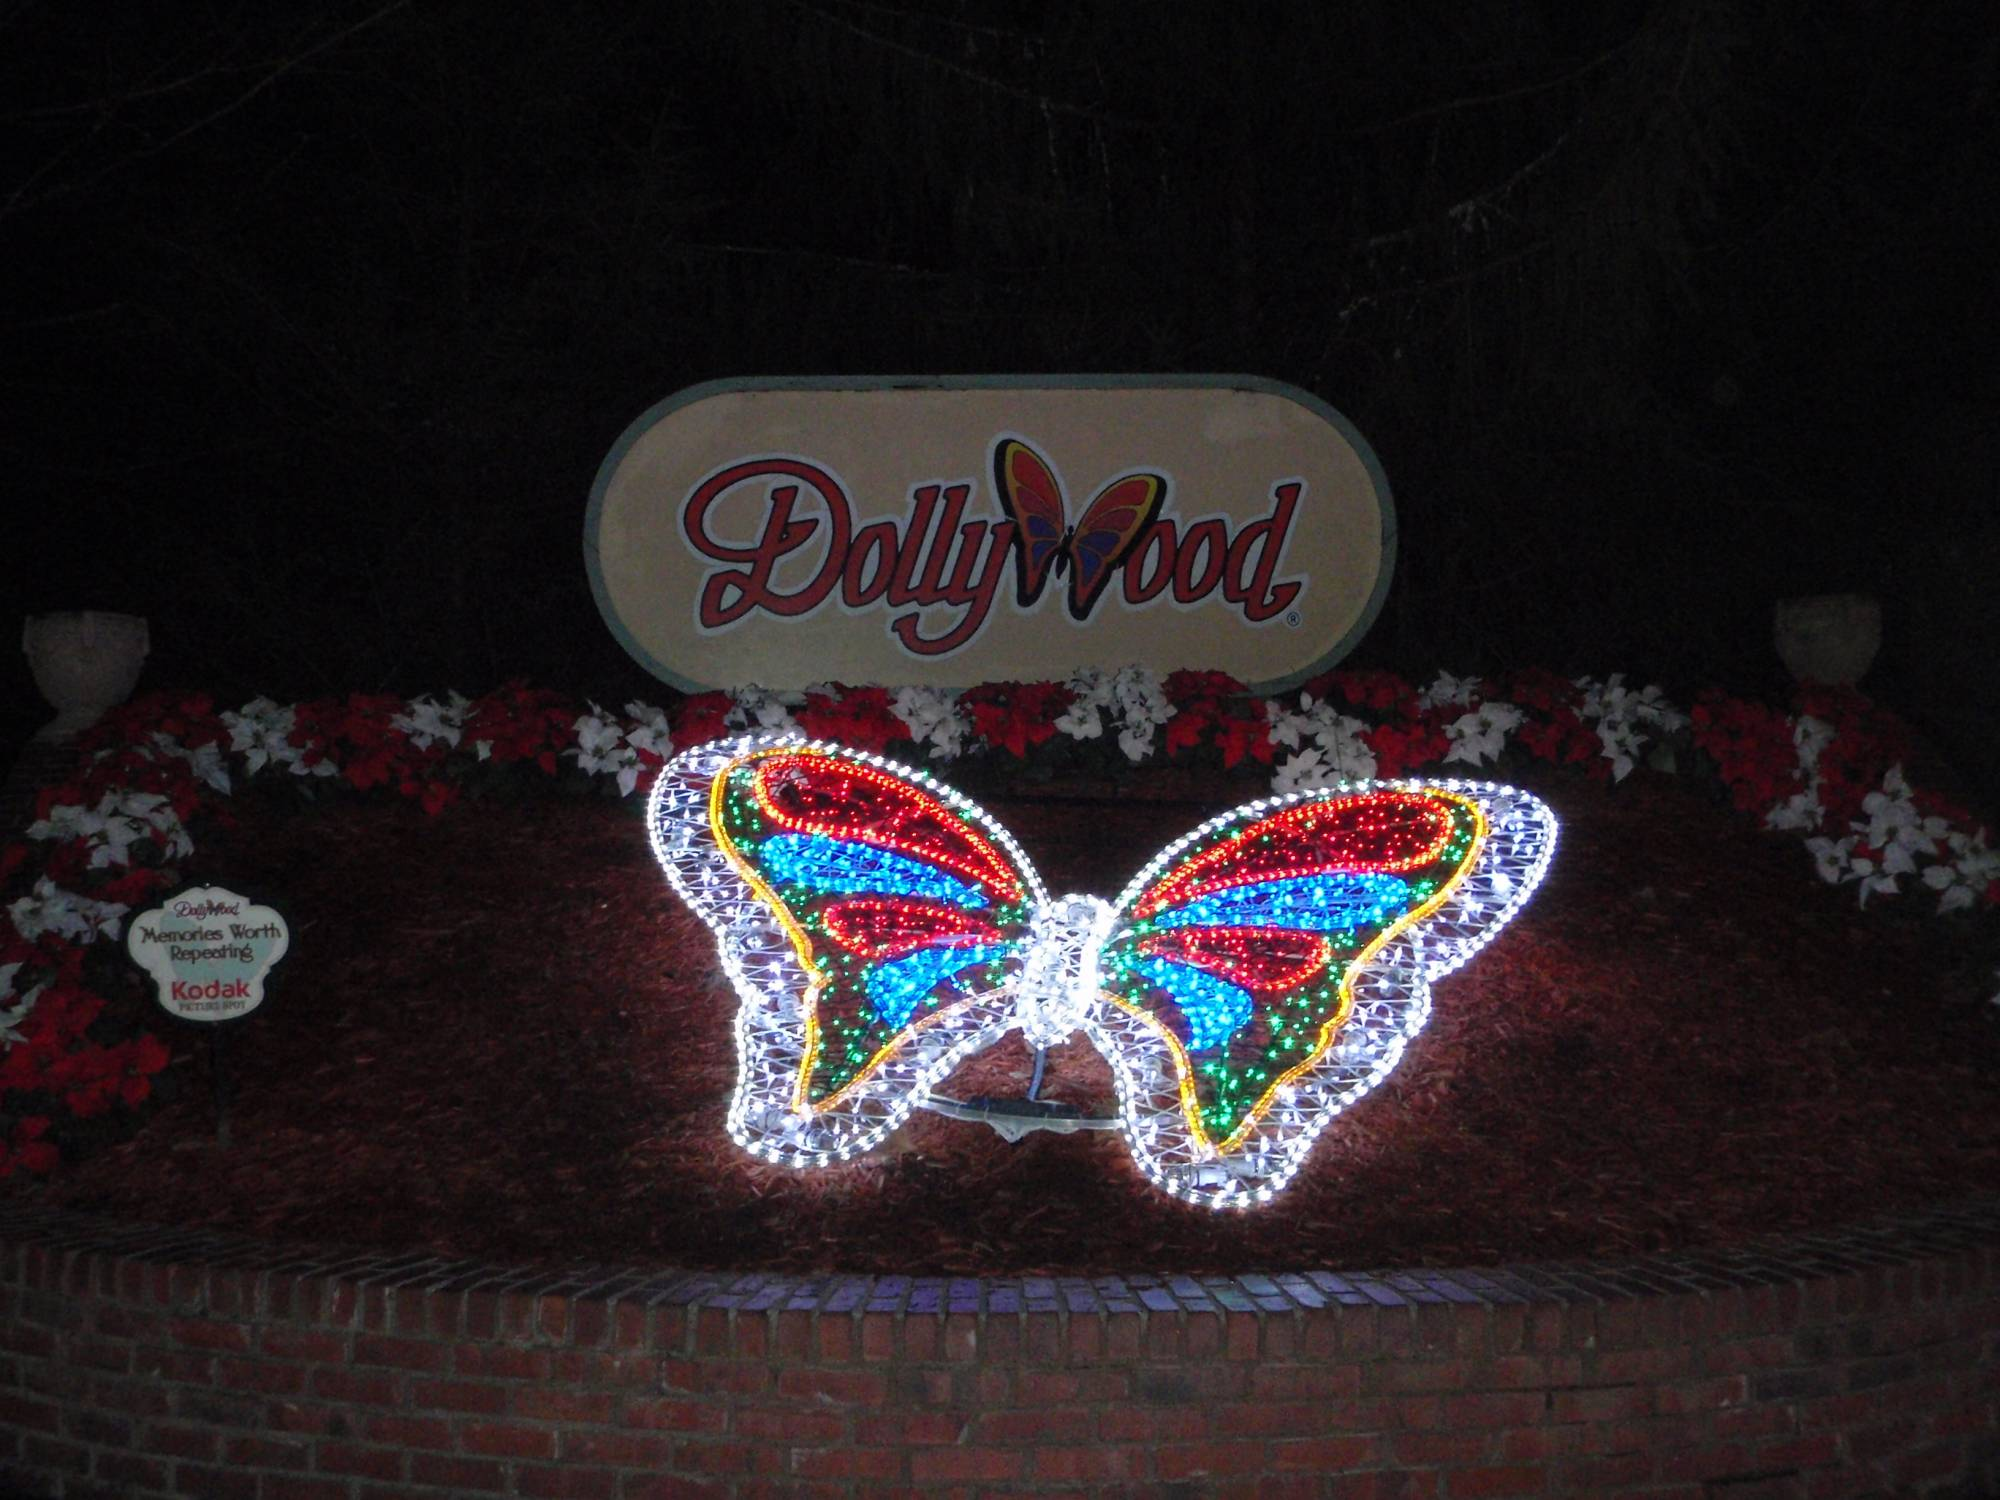 Dollywood photo